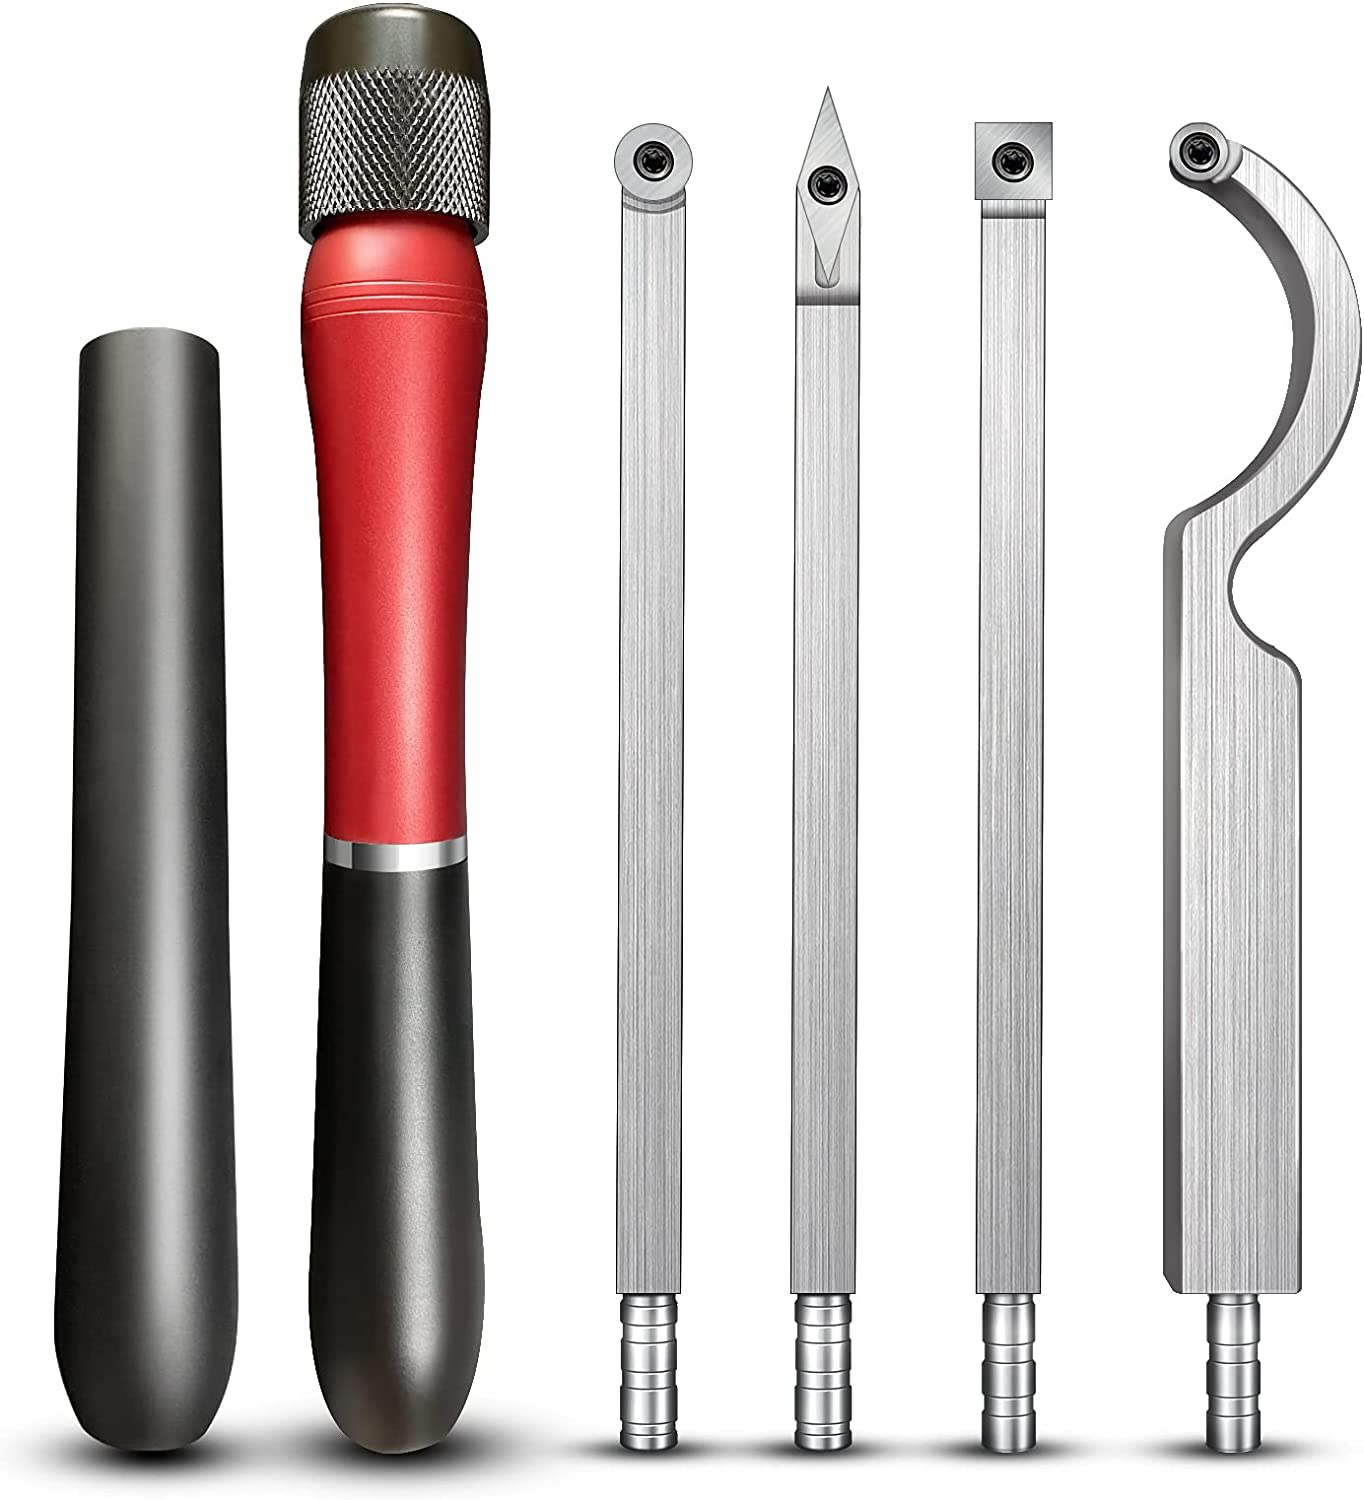 Aogbra Quick Change Carbide Tipped Bargain Tools Lates Turning Wood Max 46% OFF Set